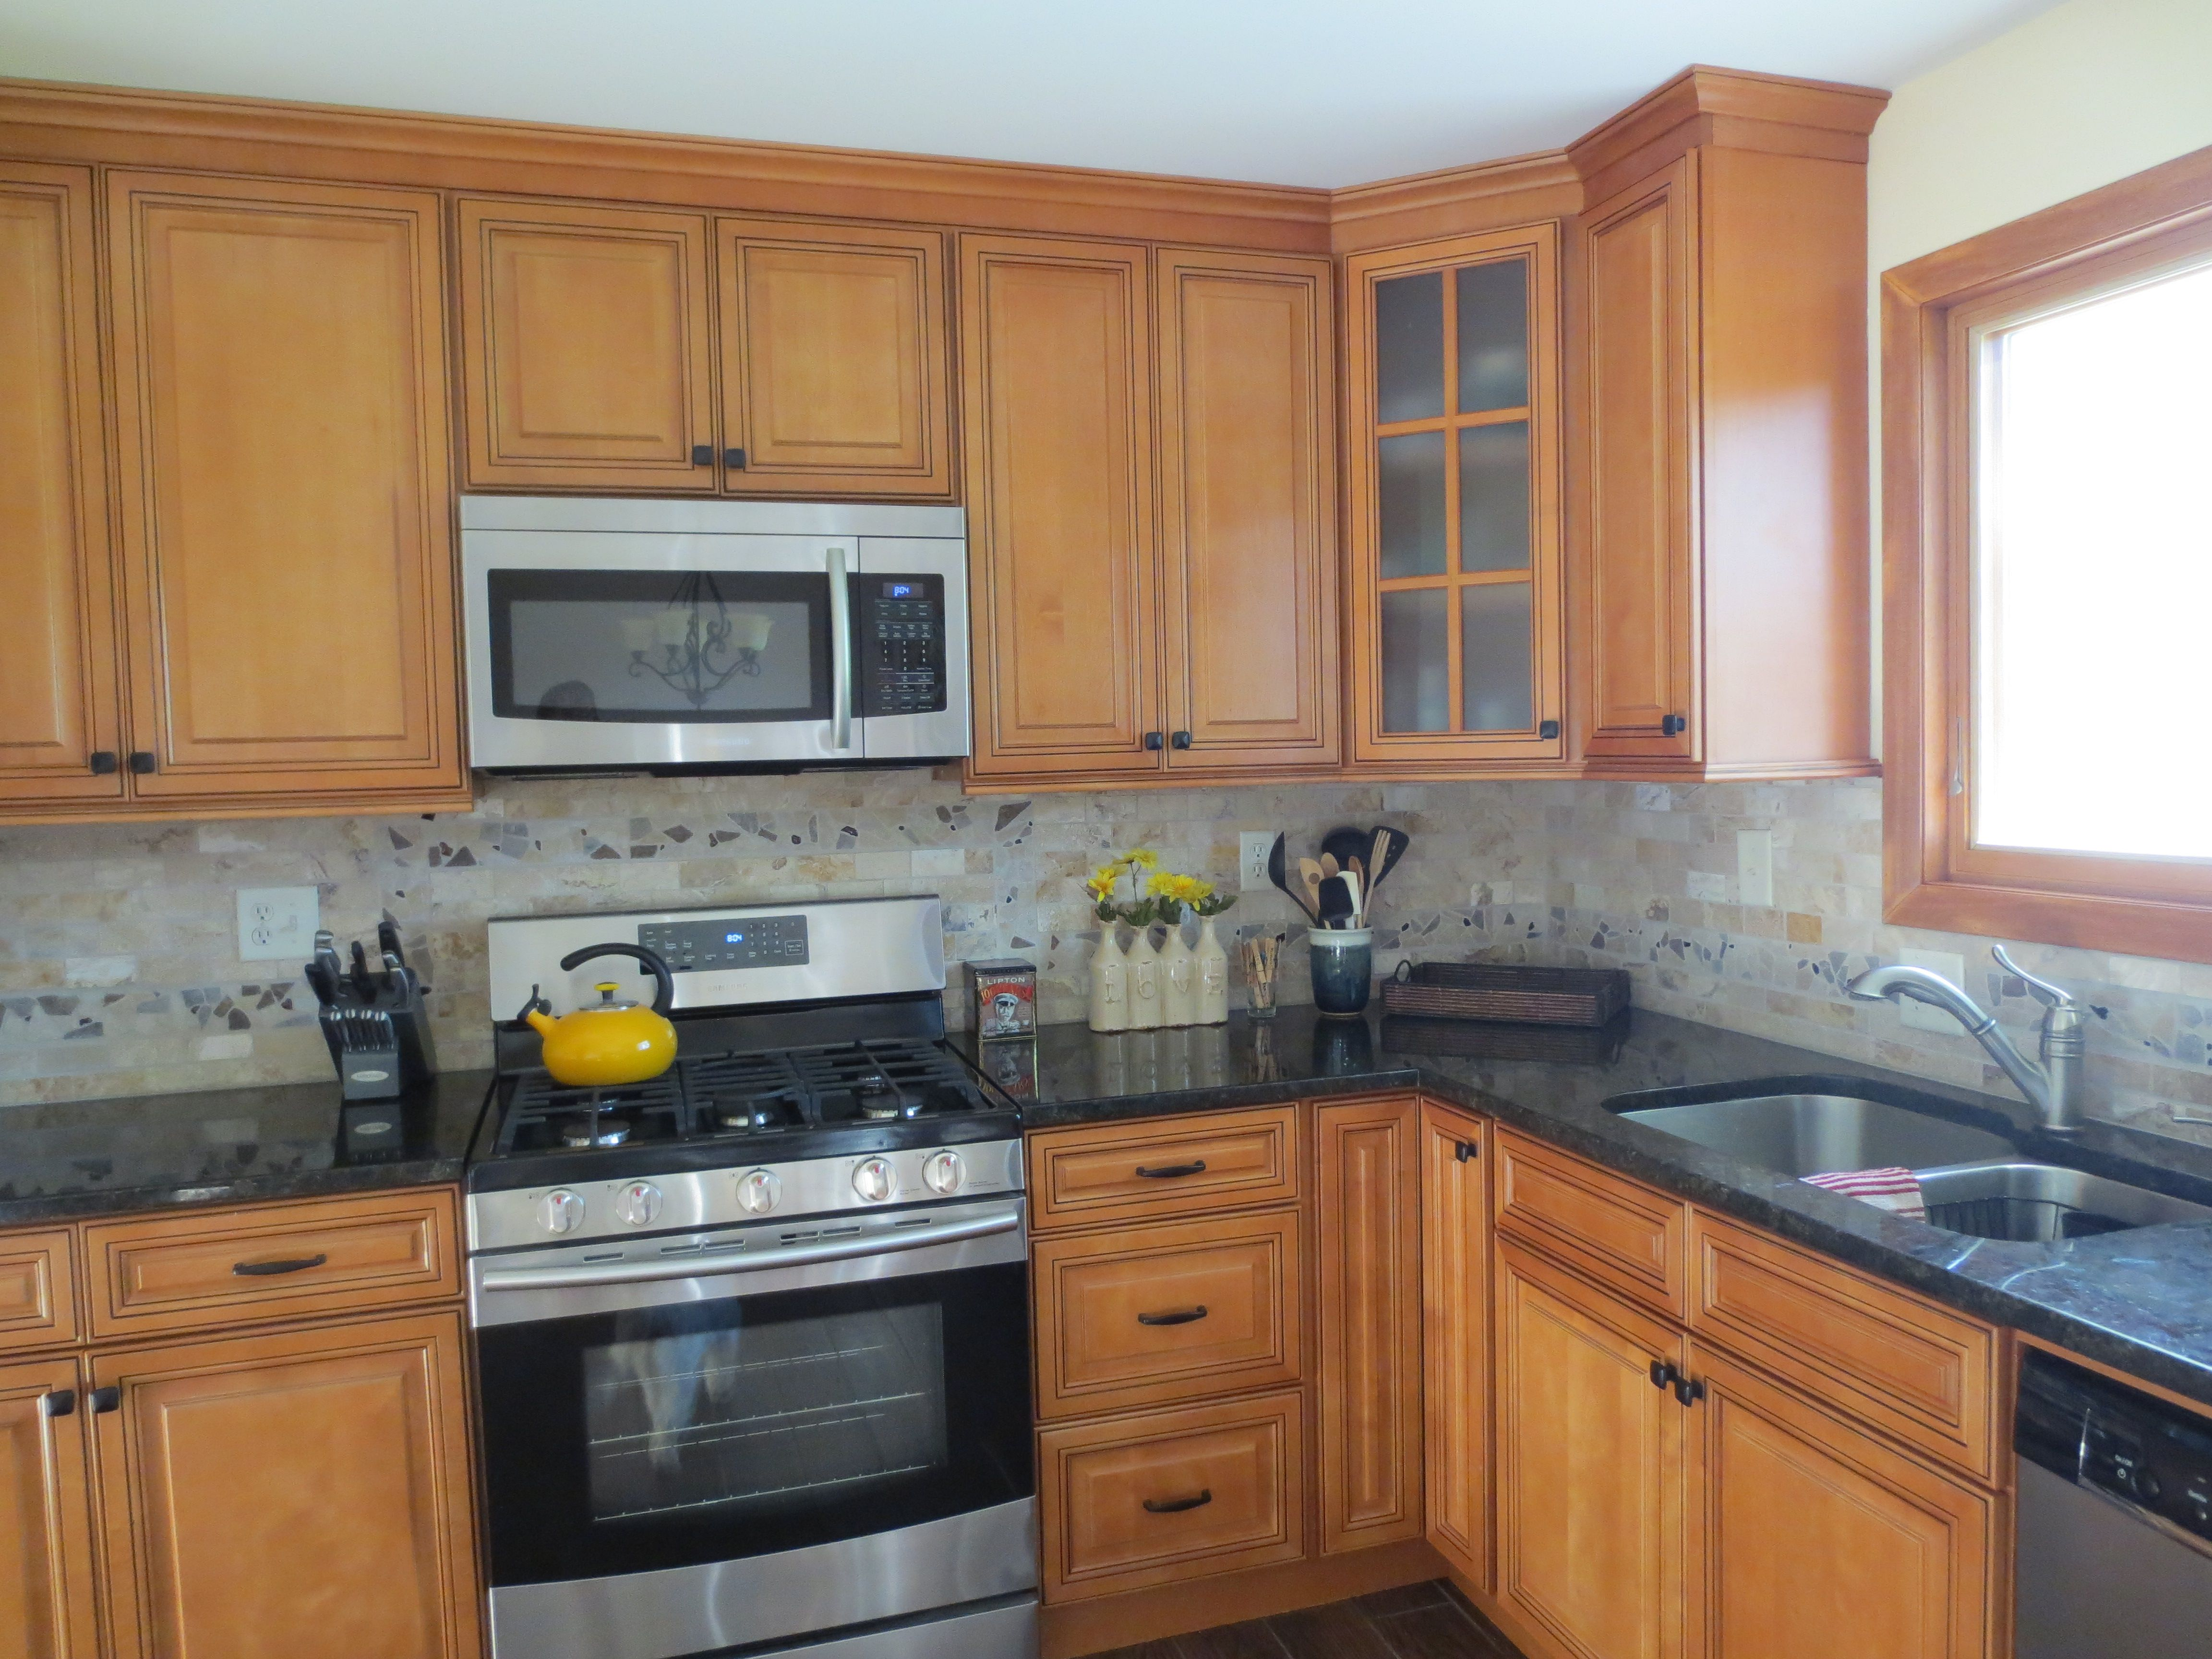 Kitchen remodel with maple cabinets, Golden Eye granite ... on Backsplash For Maple Cabinets  id=66355